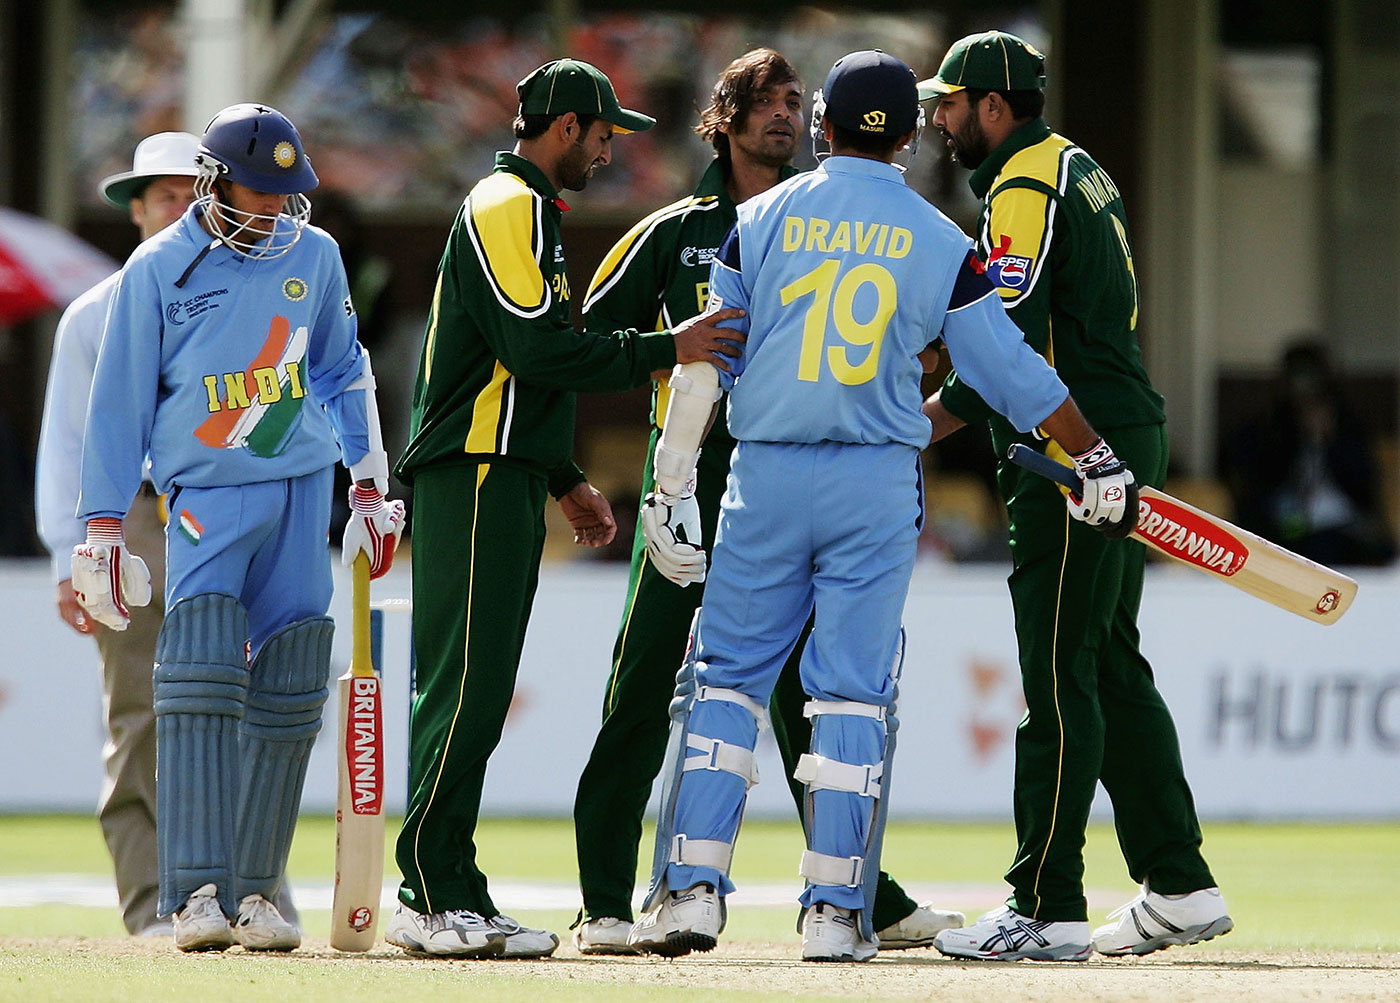 While players consider the rivalry as just another contest in a professional sphere, sometimes emotions can spill over in high-stakes games. Shoaib Akhtar and Rahul Dravid face off at the 2004 Champions Trophy, Edgbaston